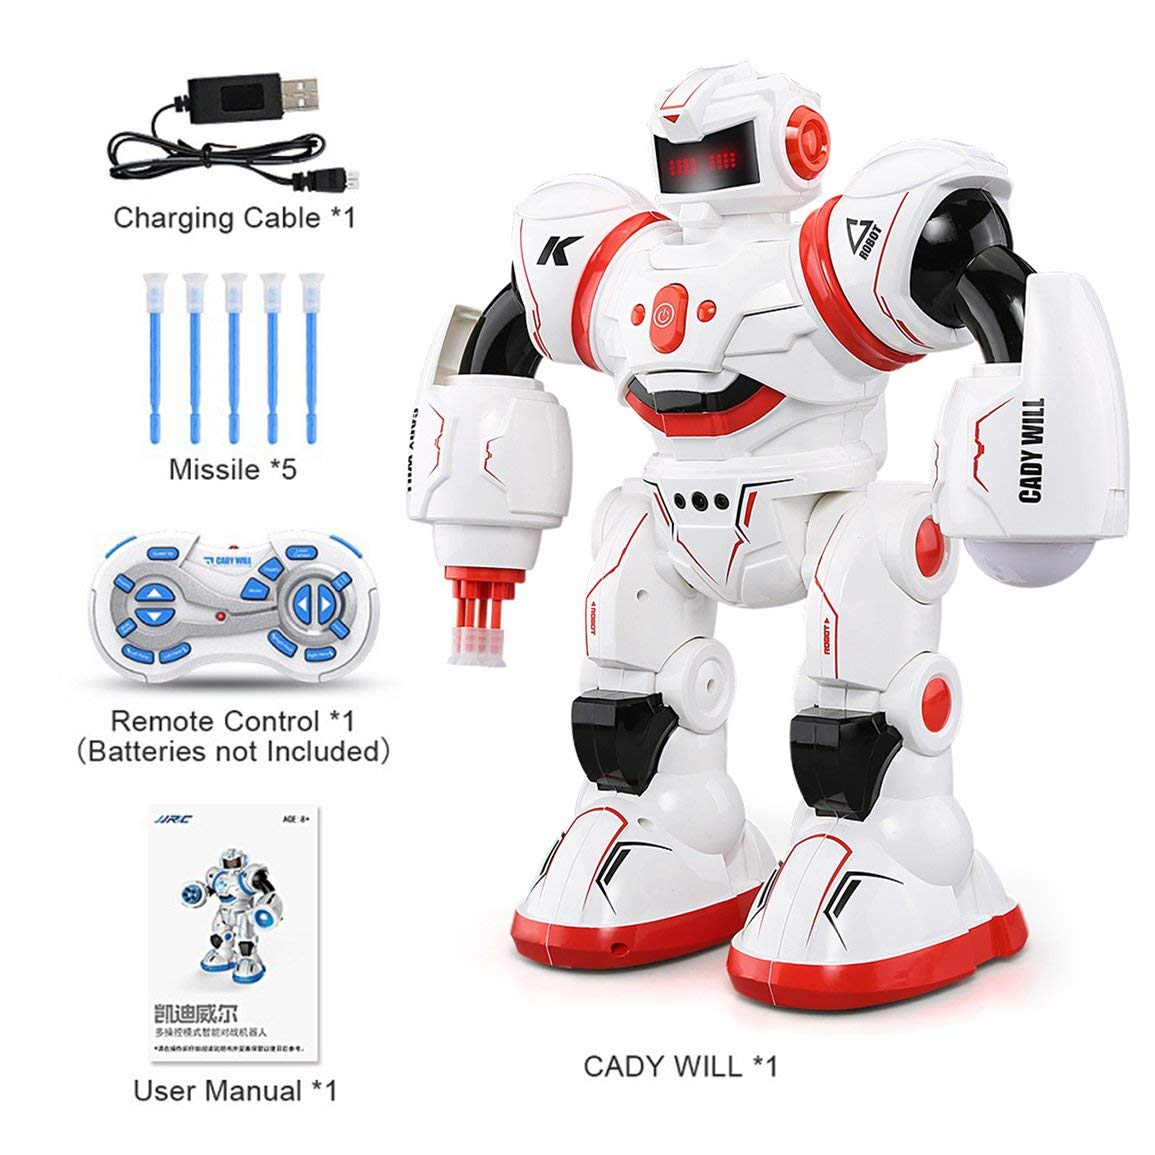 Fantasyworld JJRC R3 Programmierbare Defender Fernbedienung Early Education intelligente Roboter Multi Funtion Musical Tanzen RC-Spielzeug-Kind-Geschenk